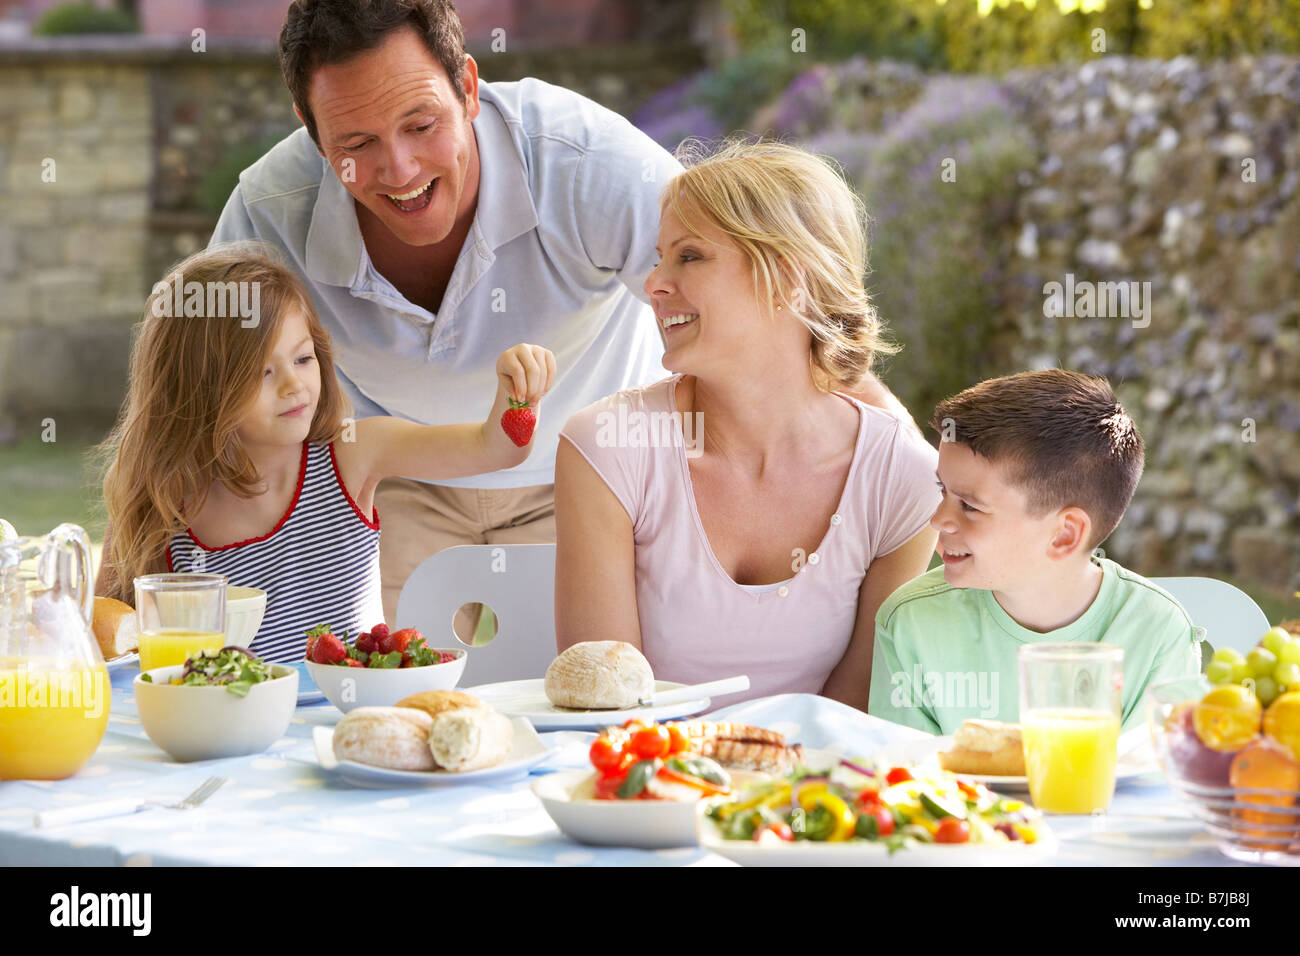 Family Eating An Al Fresco Meal - Stock Image